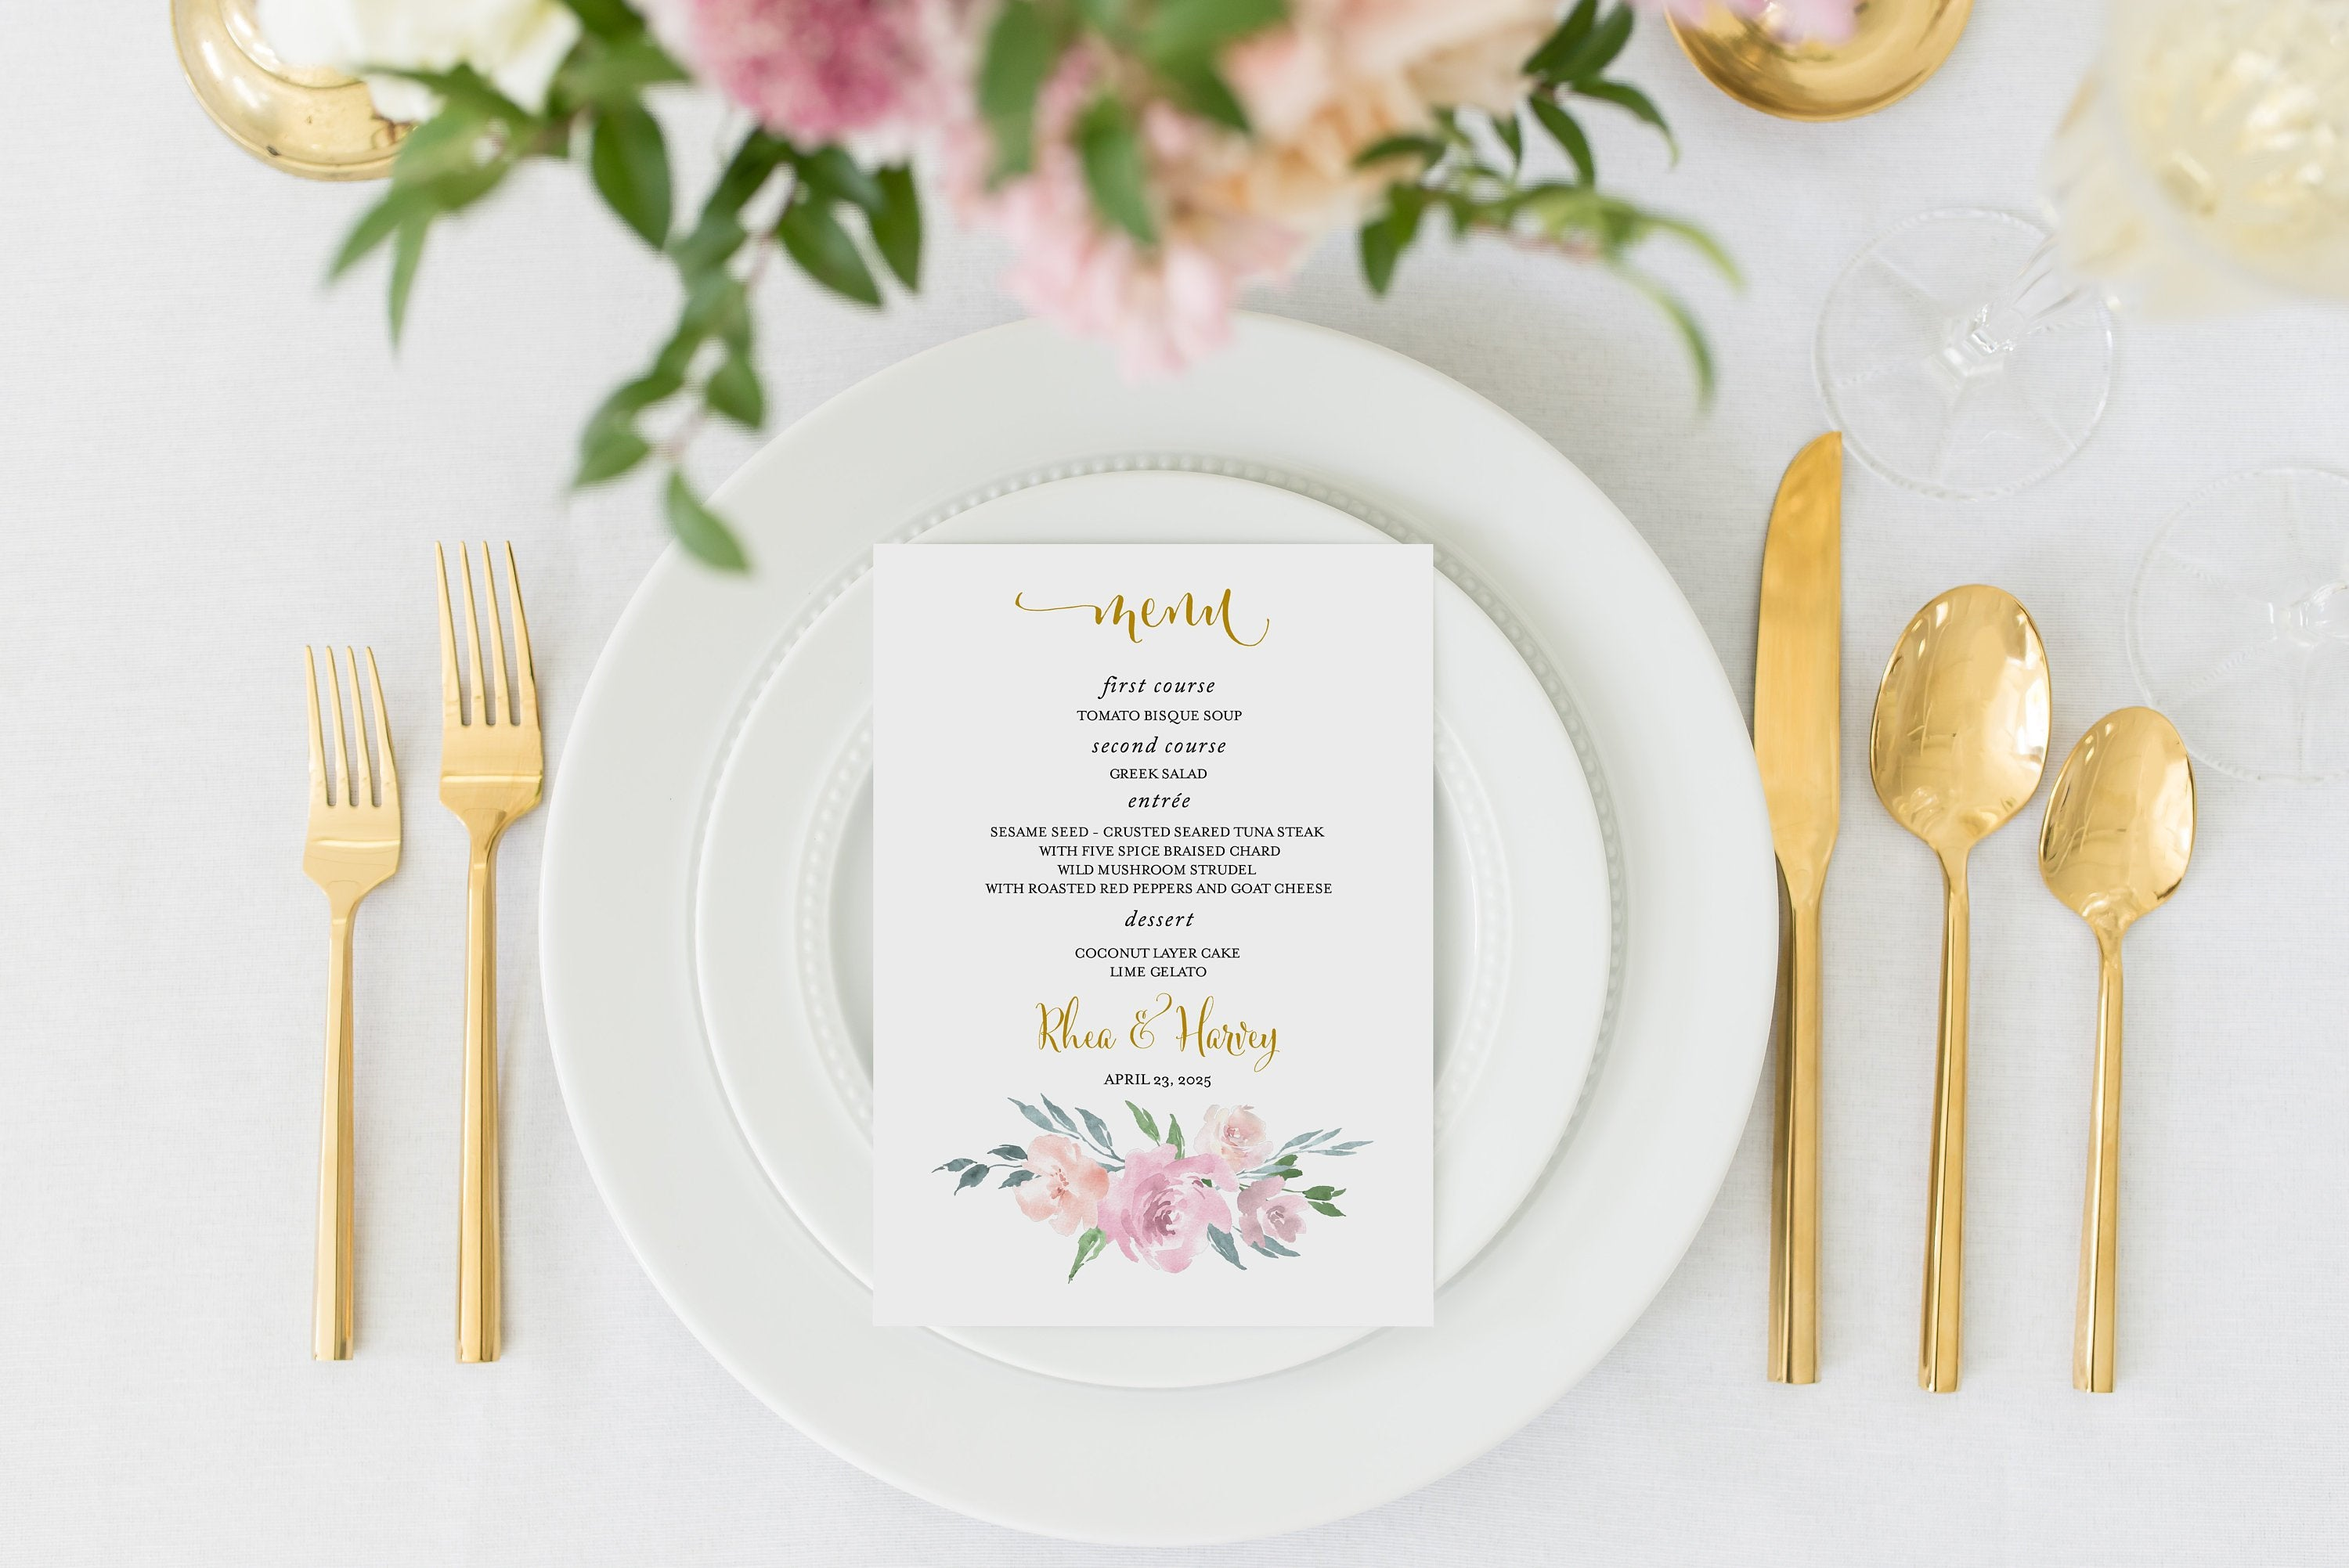 Wedding Menu Printable Wedding Menu Template Rustic Menu Dusty Blue Blush Card Instant Download Editable Templett - Rhea